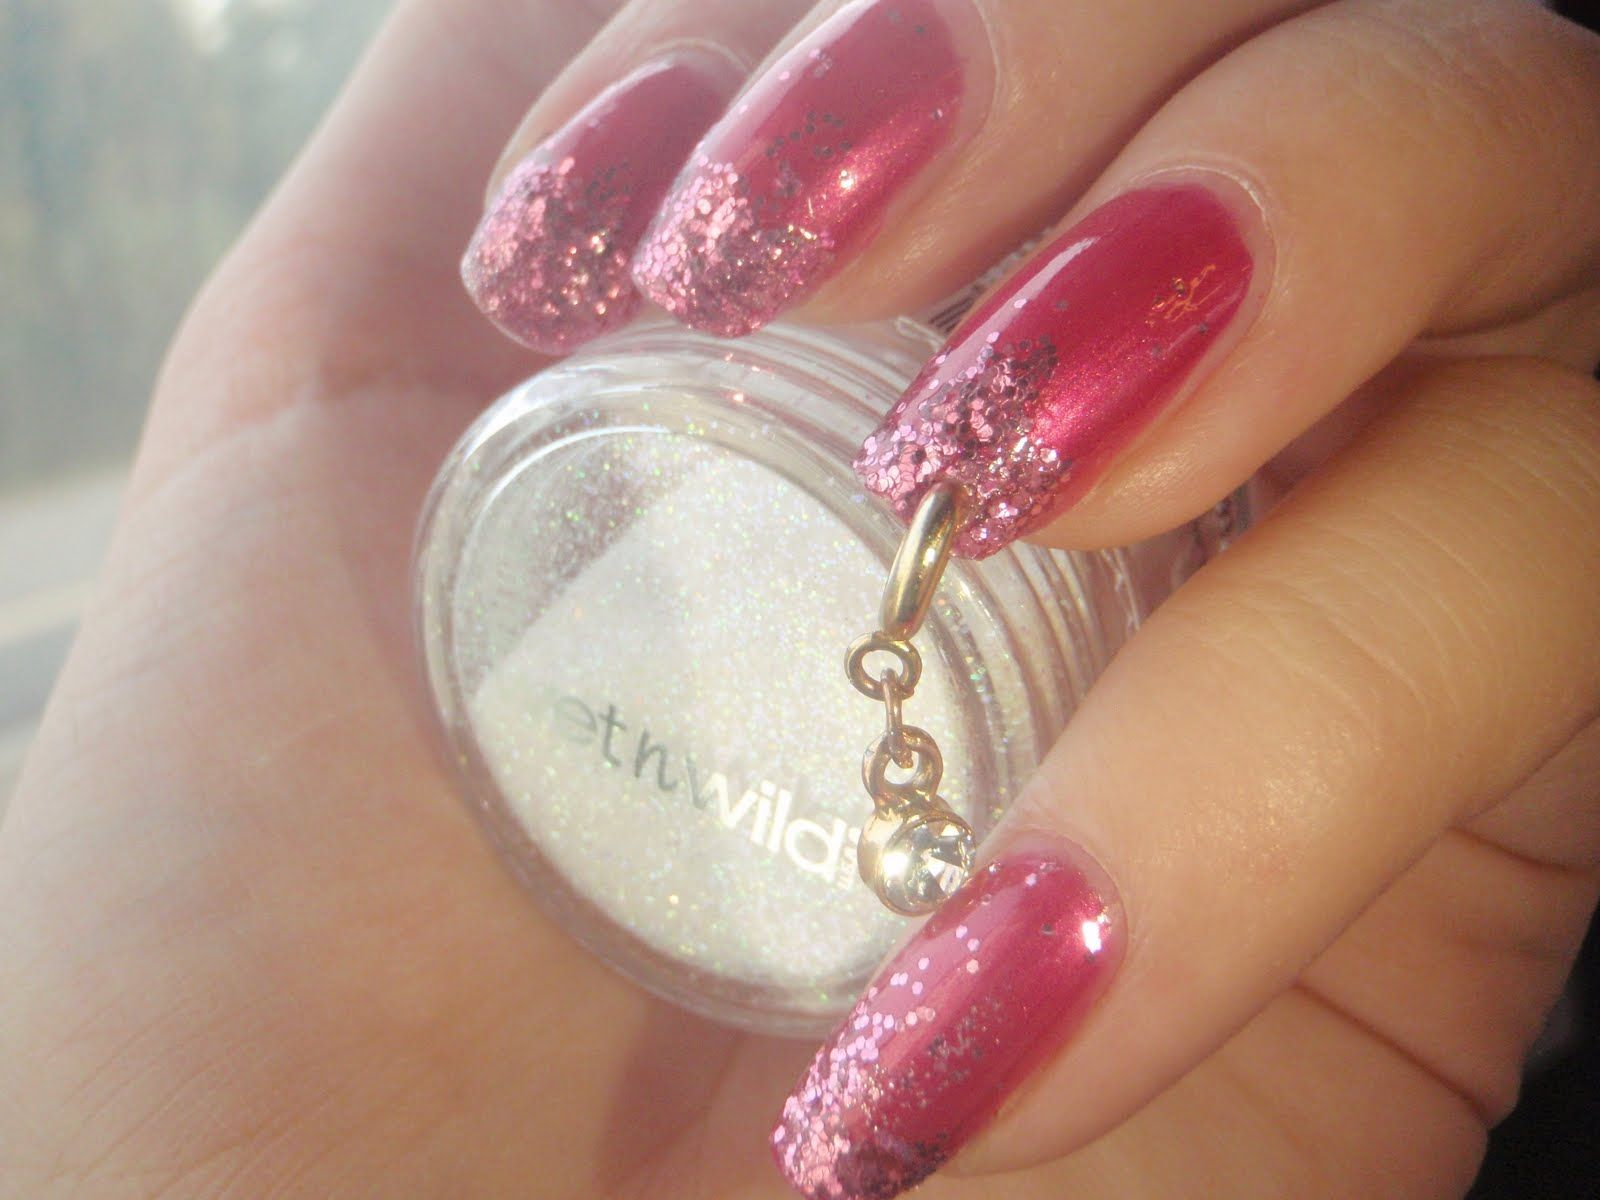 nails with a ring through the tip - Yahoo Search Results | Hair ...